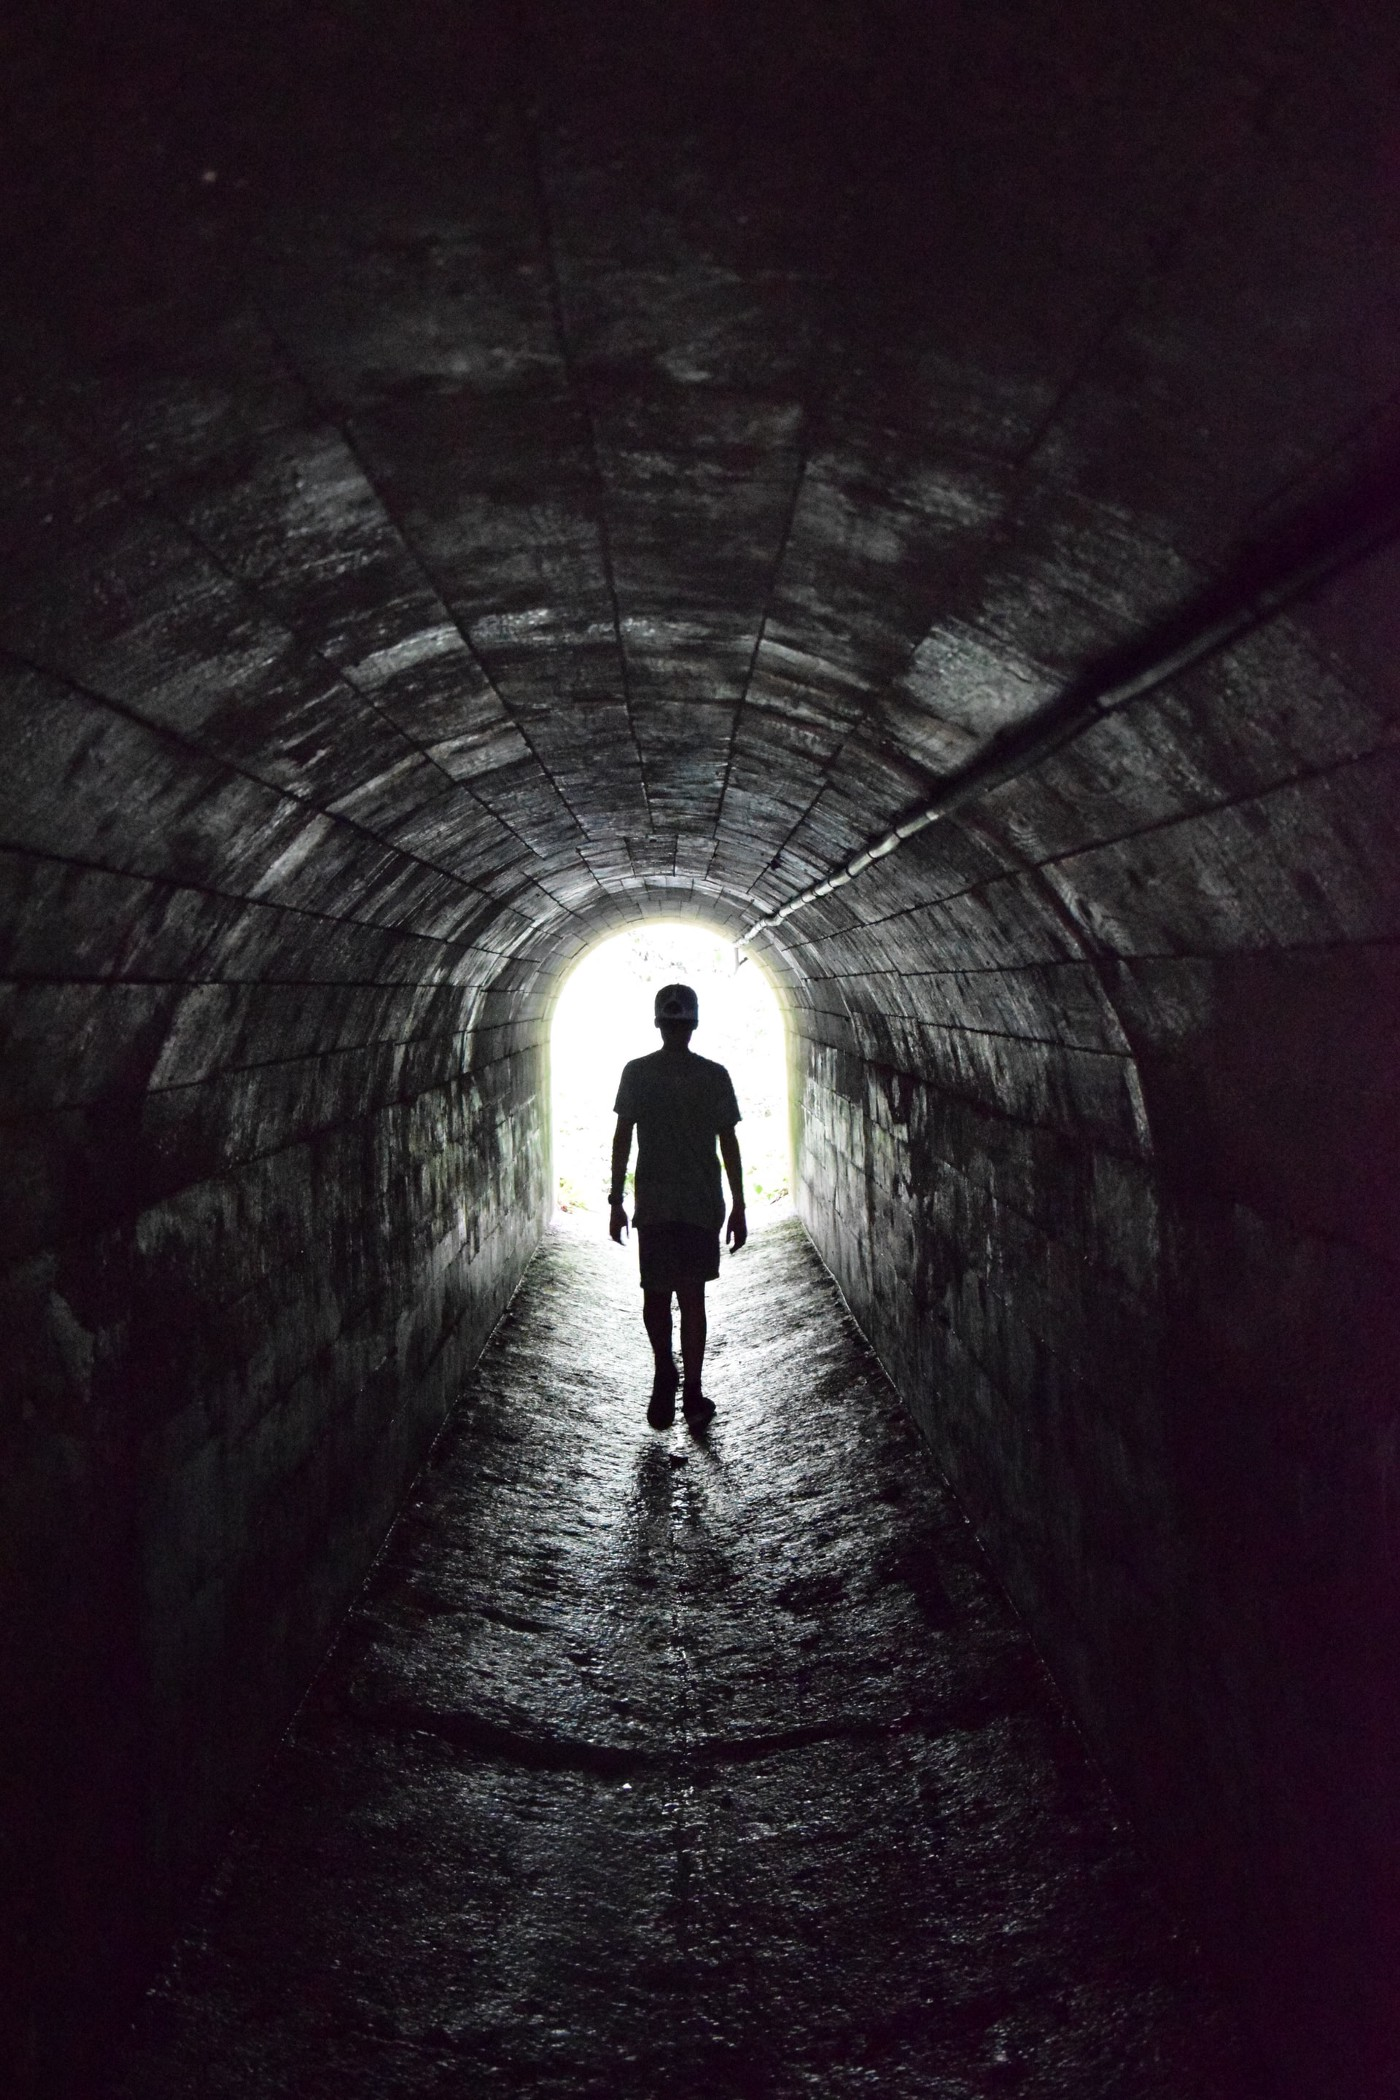 Person walking towards the light at the end of a tunnel